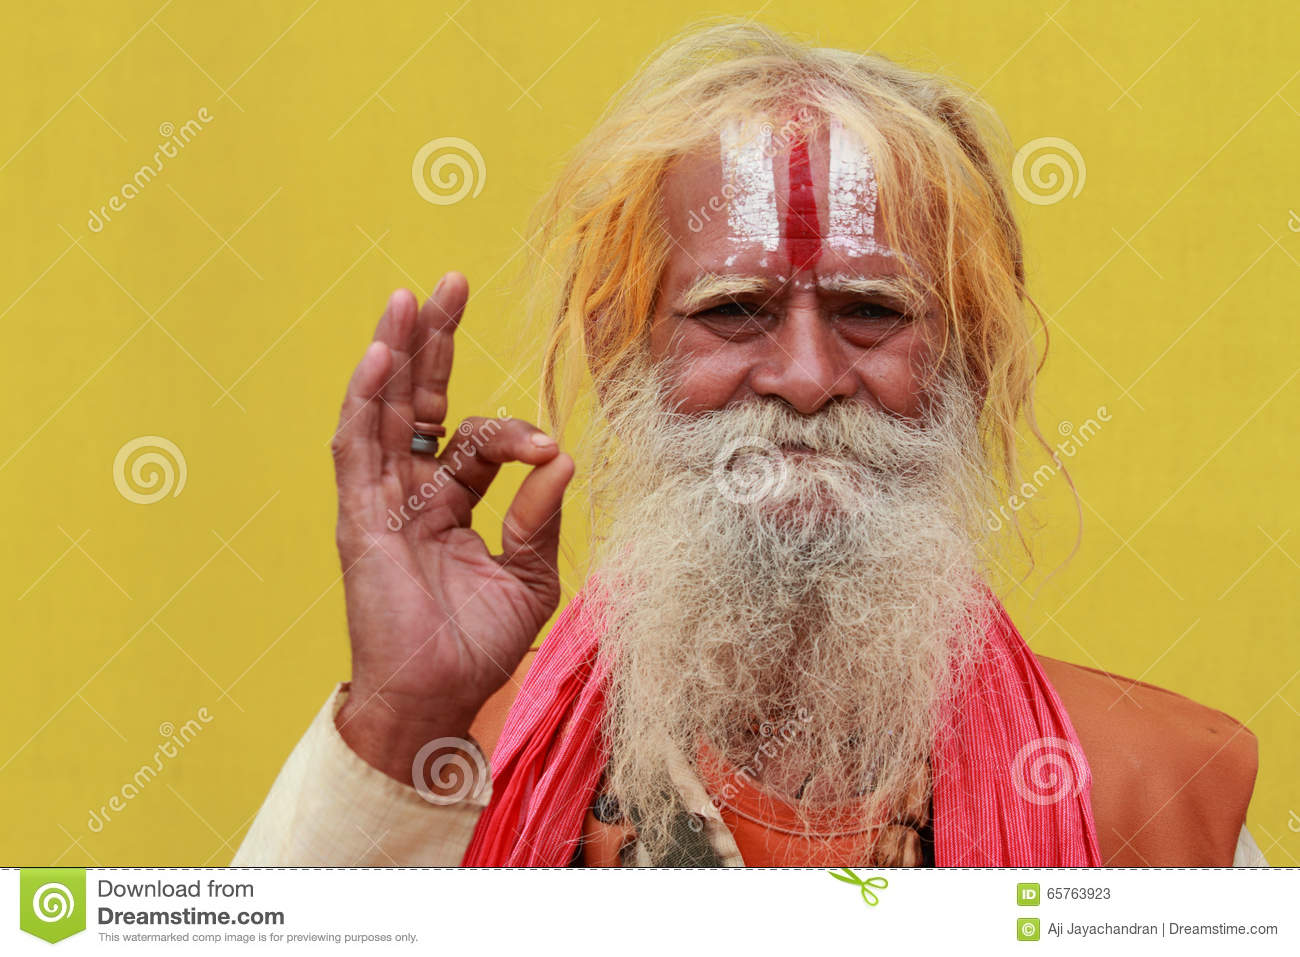 Arresting Sadhus Portrait Photography Religious Photography: Maha Kumbhmela Editorial Stock Photo. Image Of Bearded